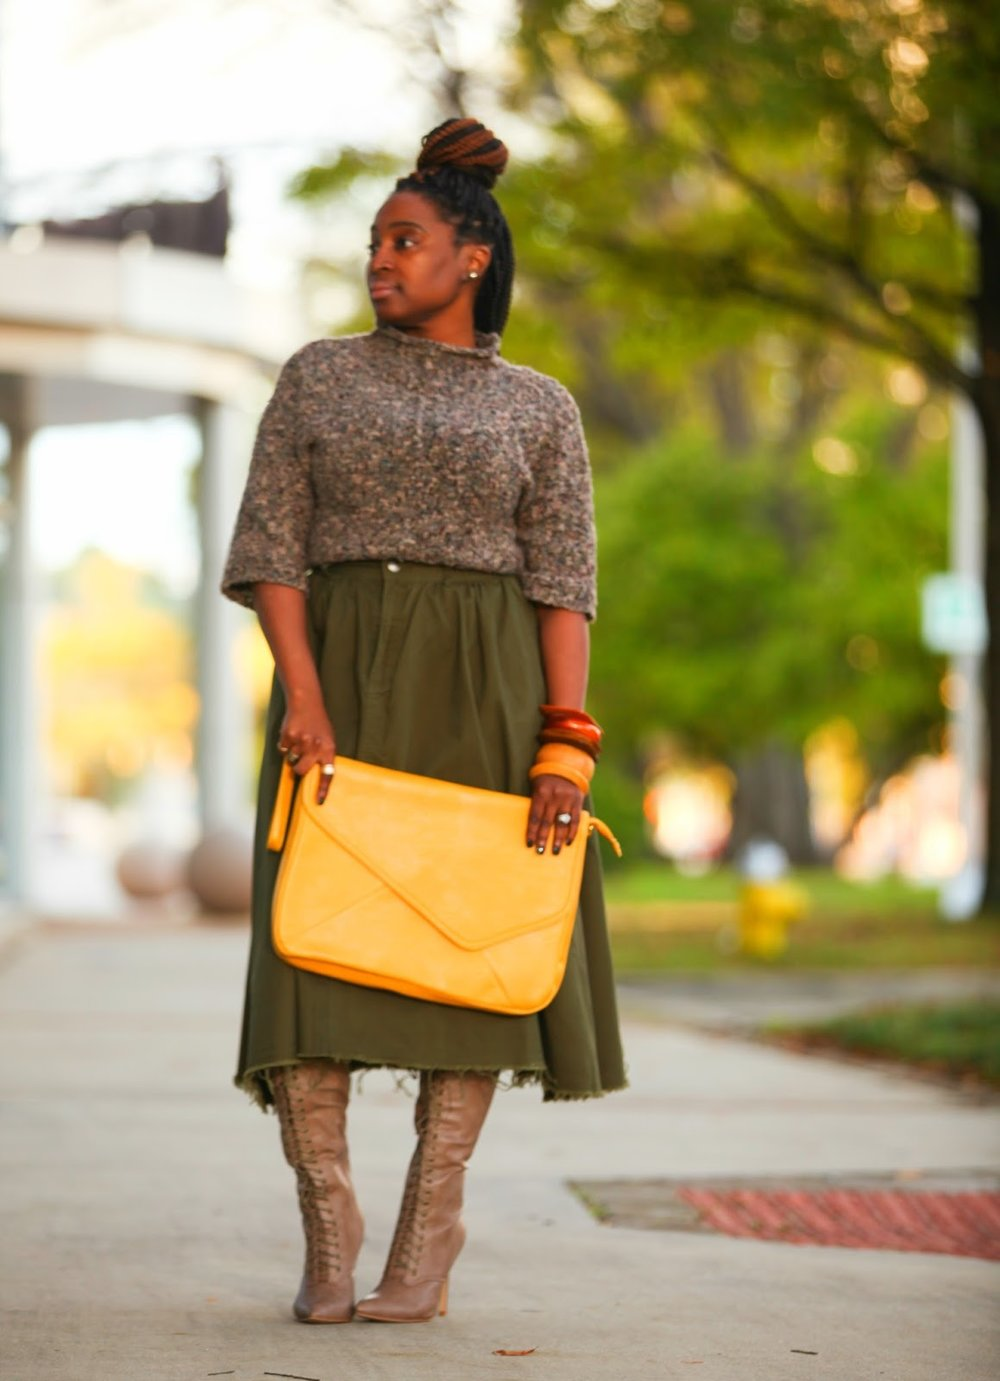 Atlanta style blogger, style blogger, Atlanta blogger, Olive Skirt, Oversized Clutch